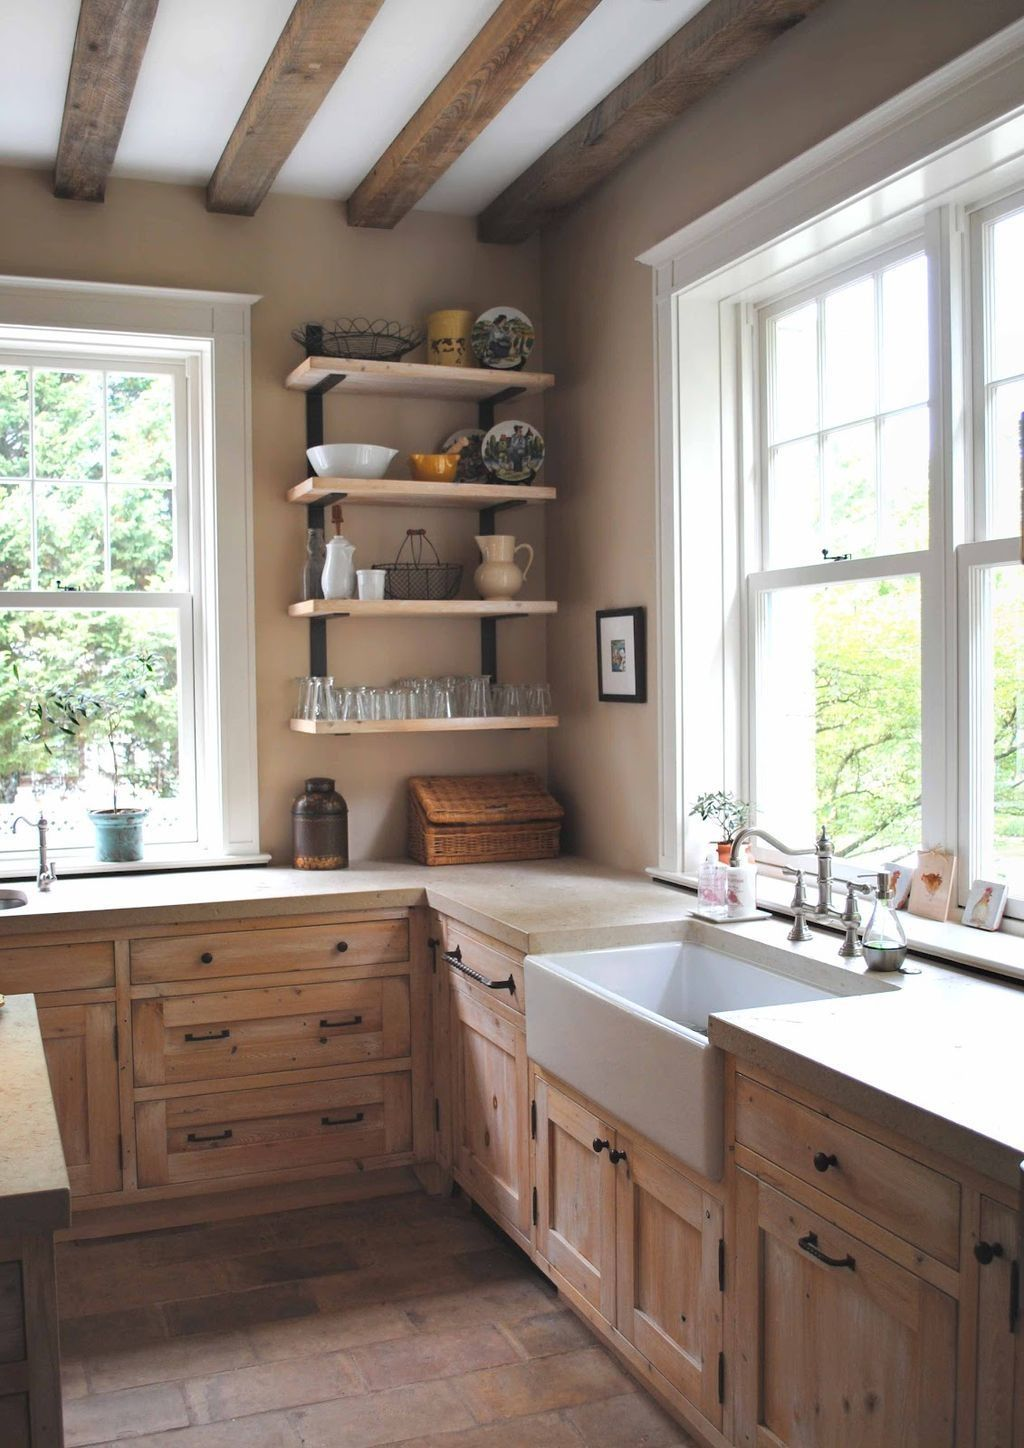 Window treatment ideas for above kitchen sink  nice  modern french country kitchen decoration ideas for your home